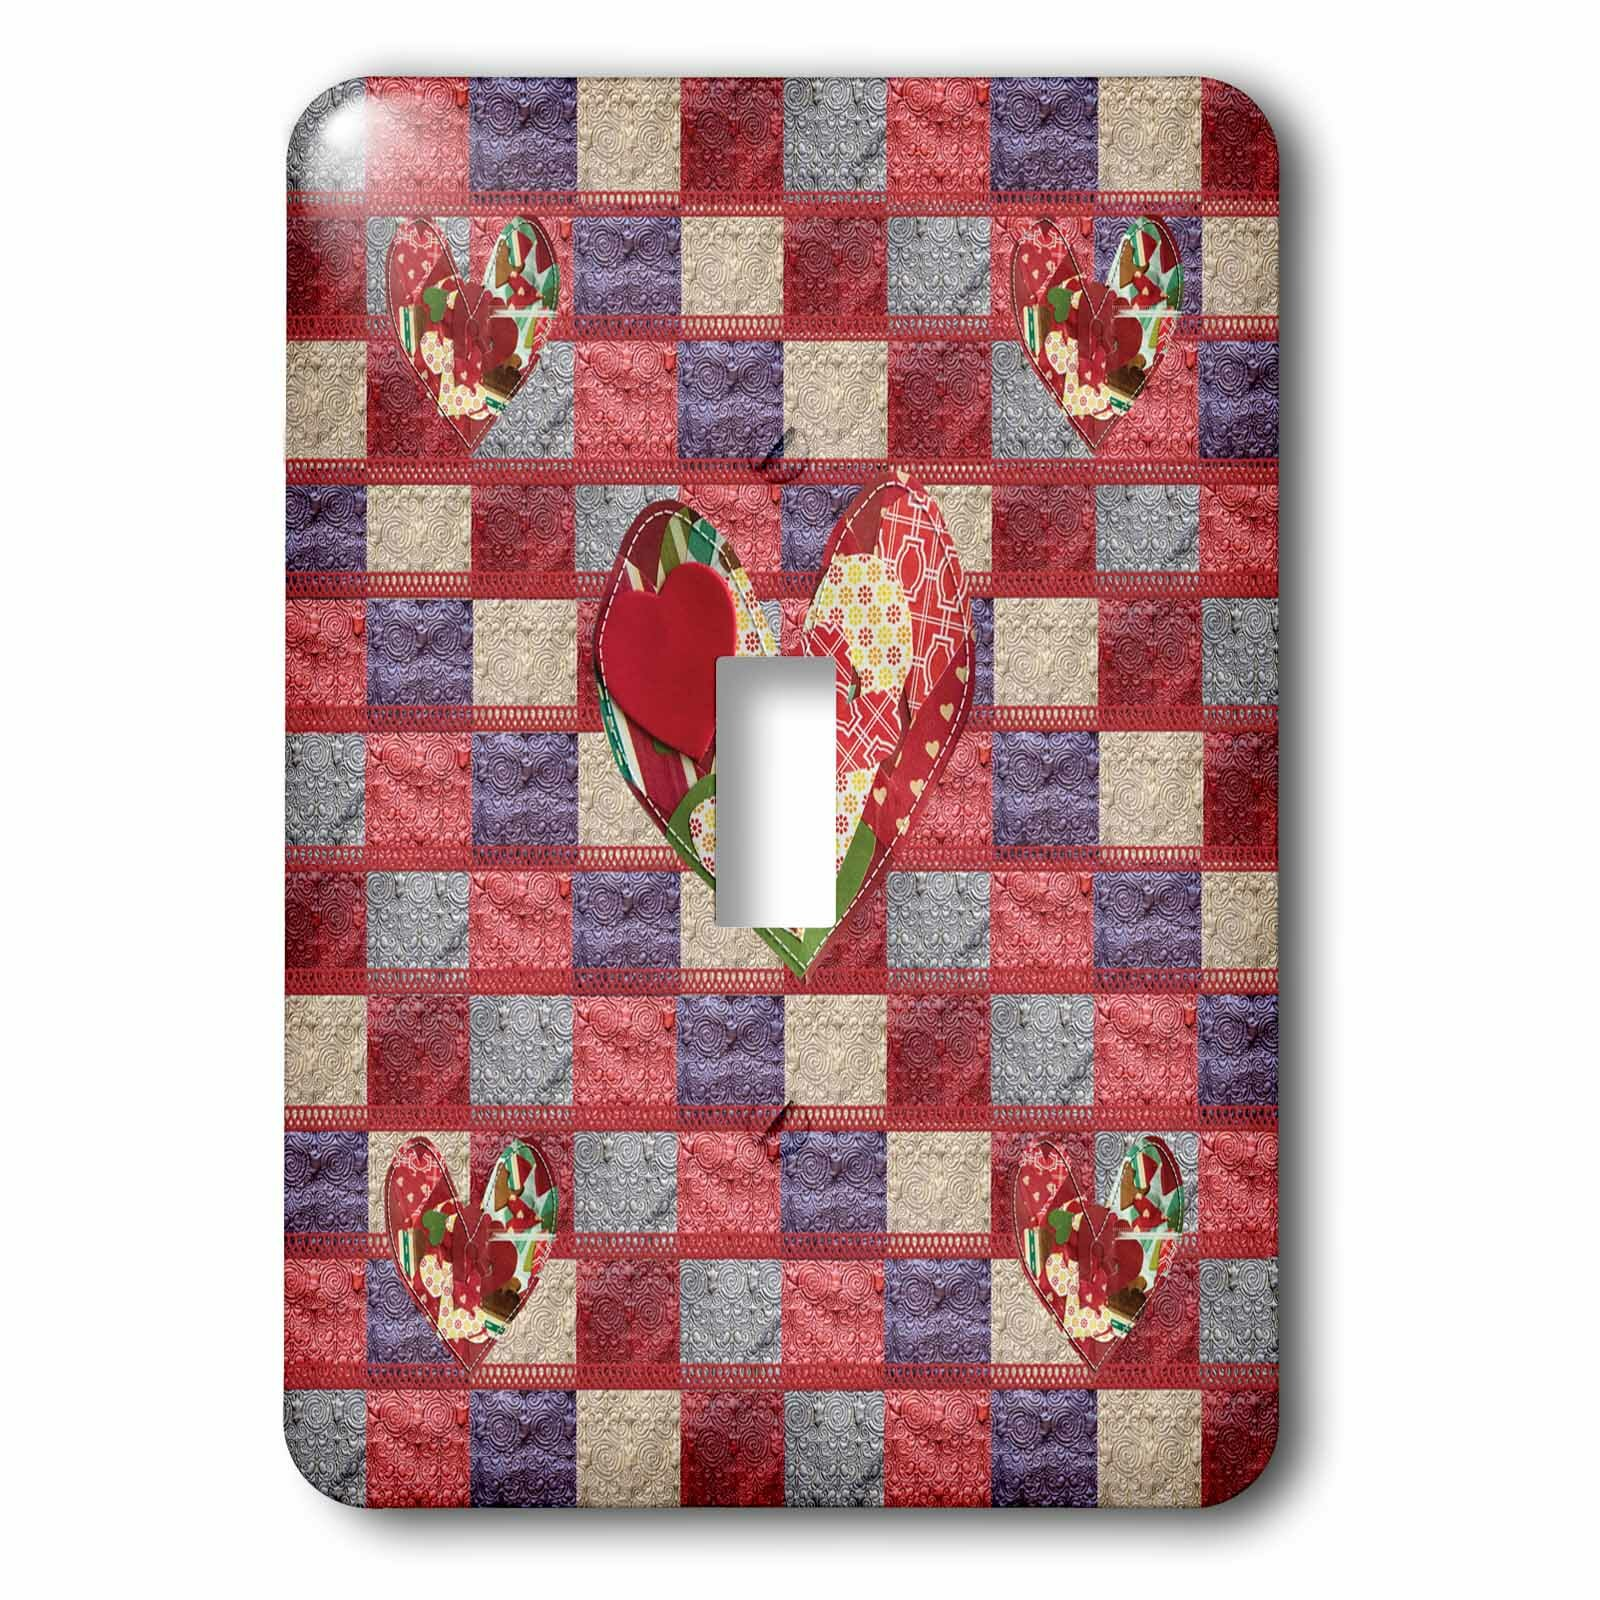 3drose Quilted Hearts 1 Gang Toggle Light Switch Wall Plate Wayfair